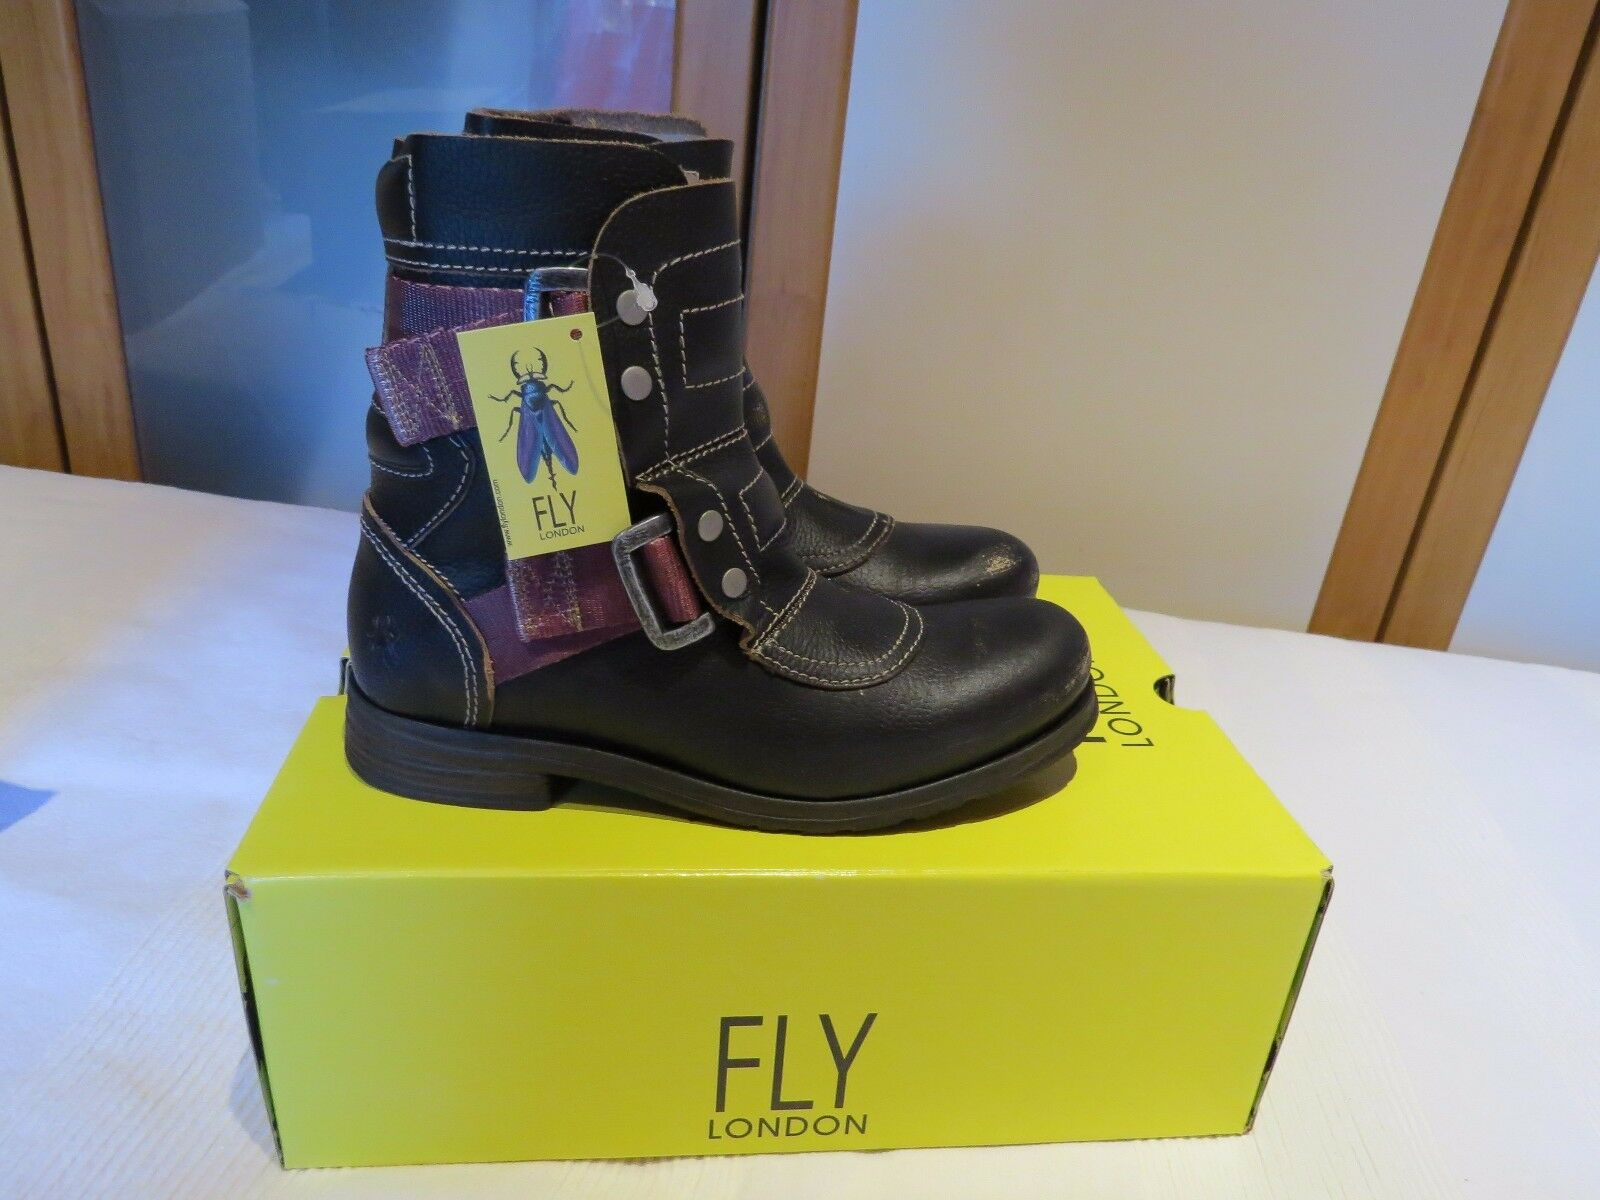 FLY UK LONDON SELI700FLY CRAFT BLACK LEATHER COMBAT Stiefel UK FLY 4 EUR 37 BNIB 612d6c